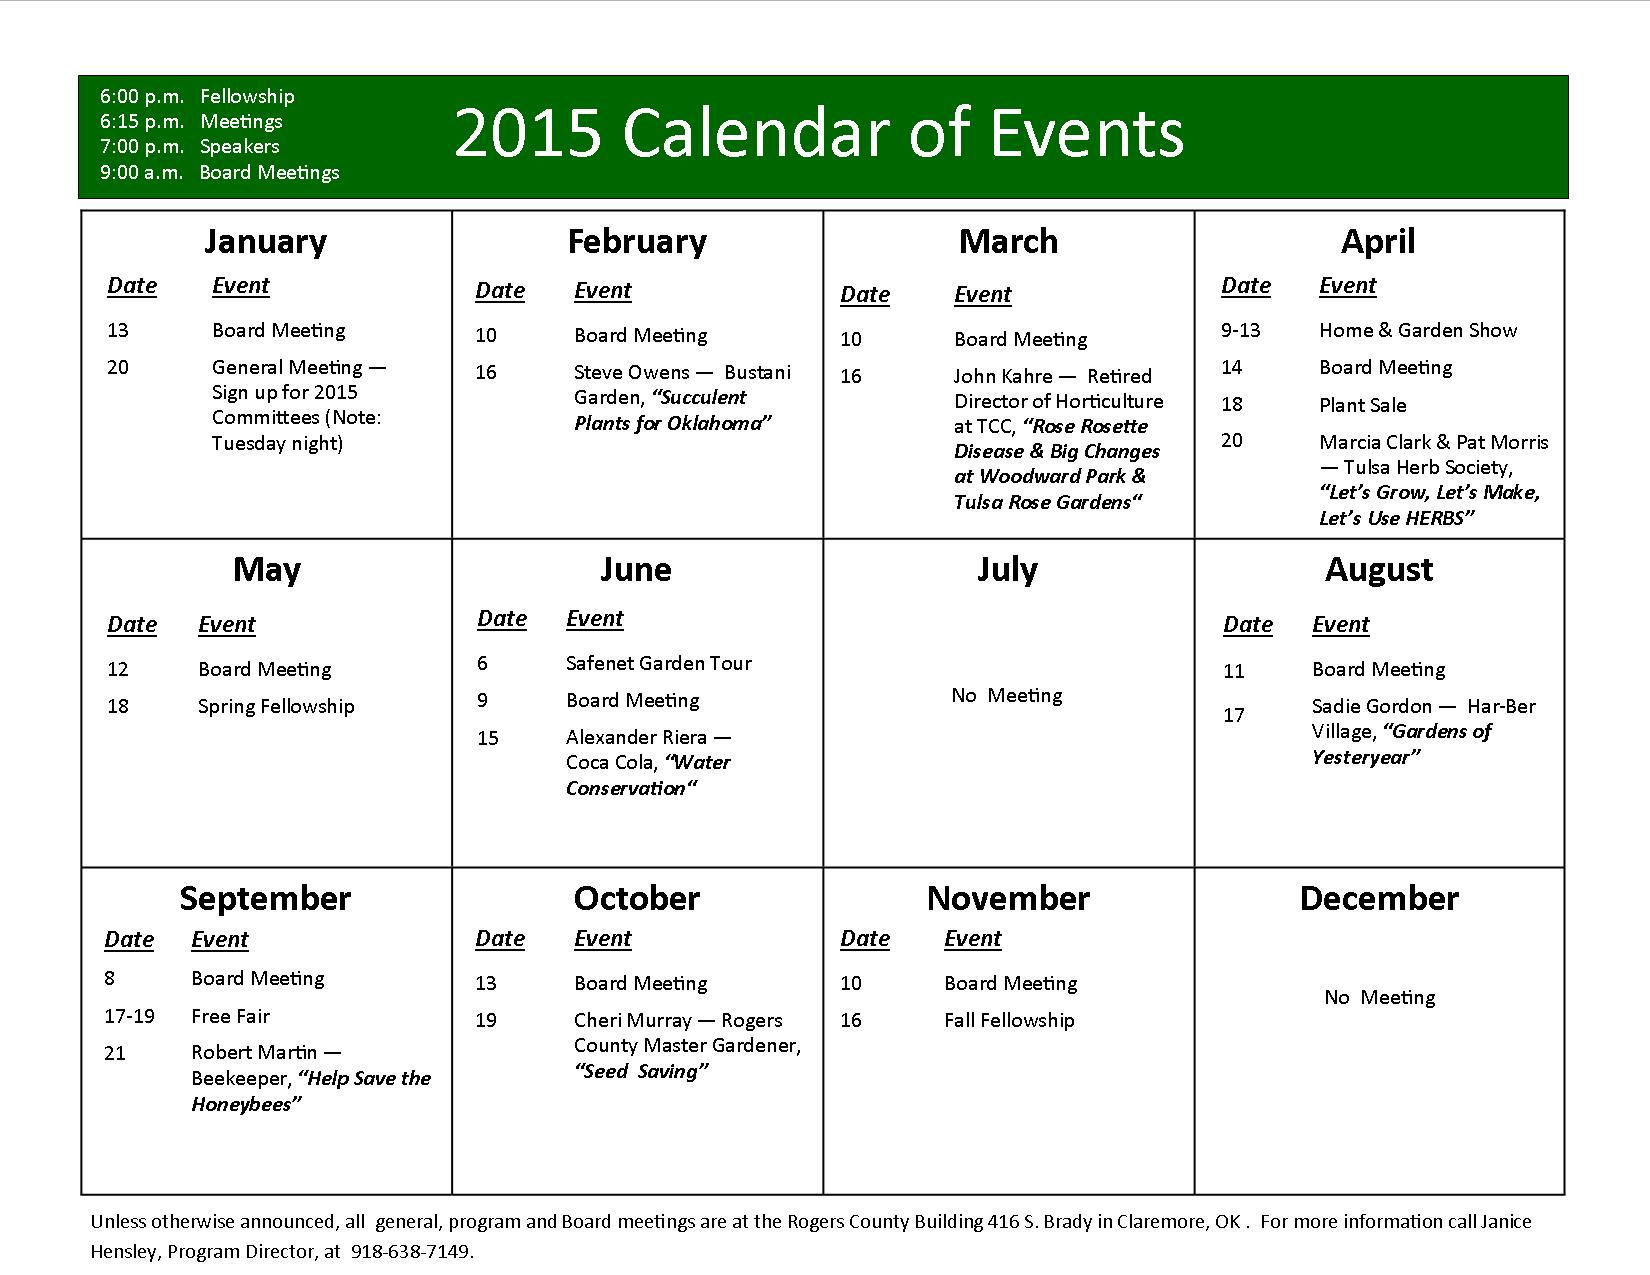 Year Calendar Events : Mgarc